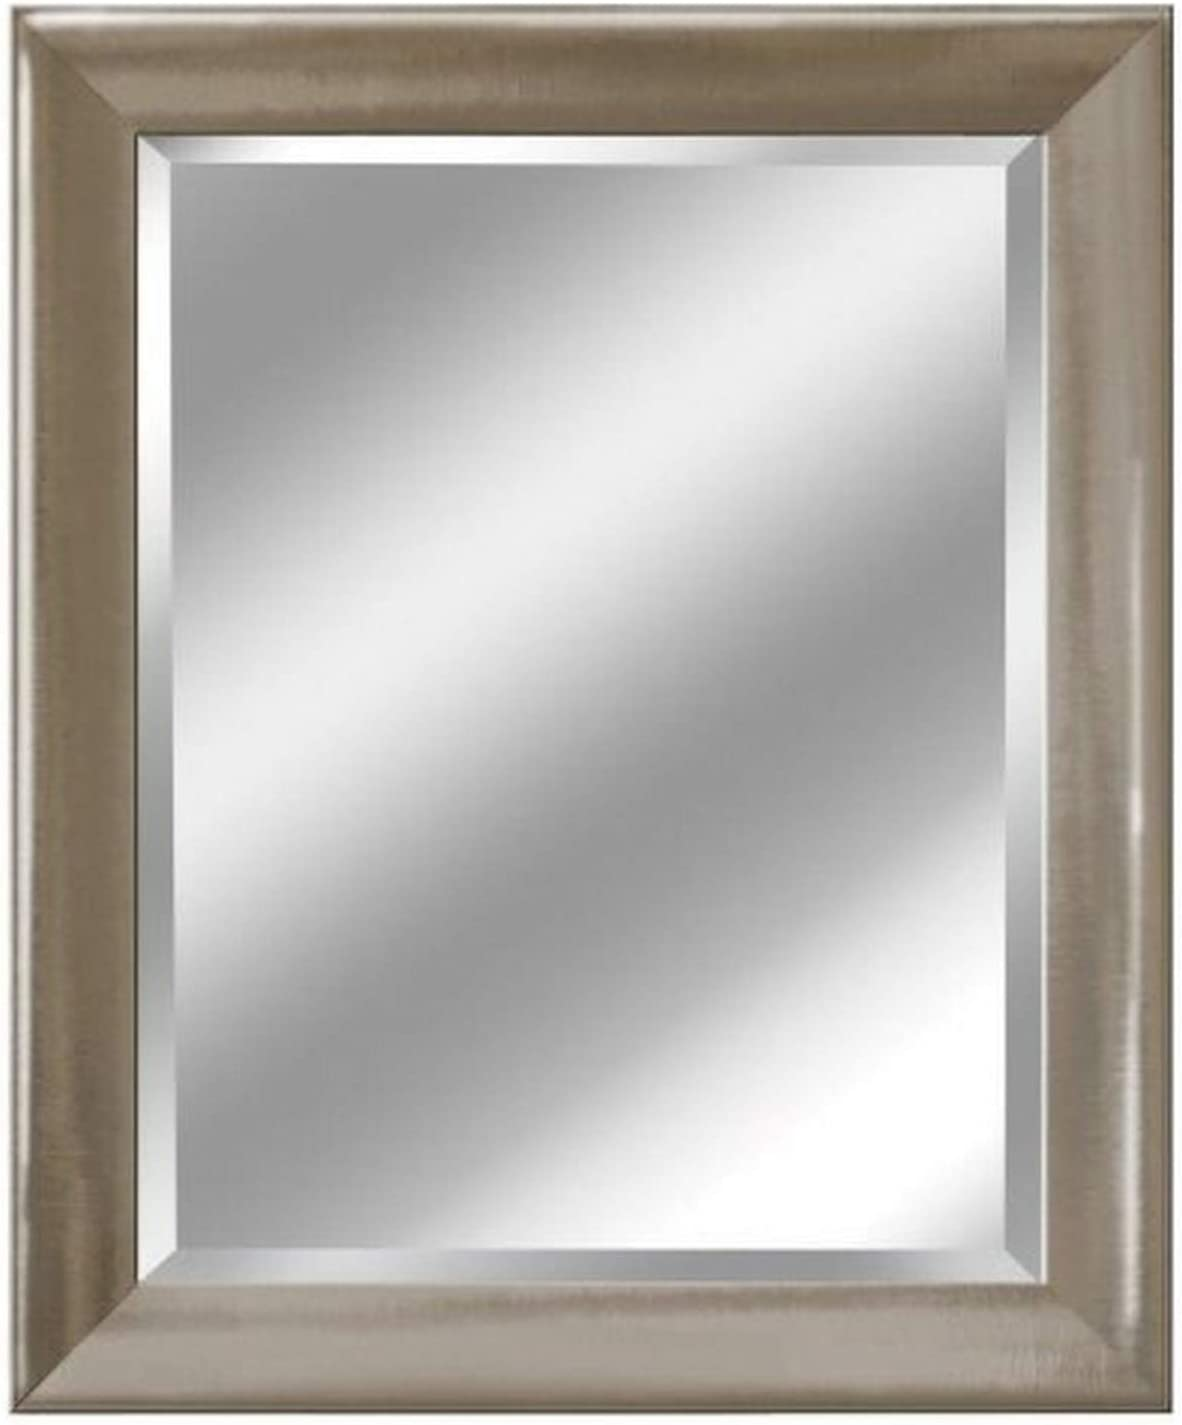 Amazon Com Head West Transitional Brushed Mirror 29 By 35 Inch Nickel Home Kitchen